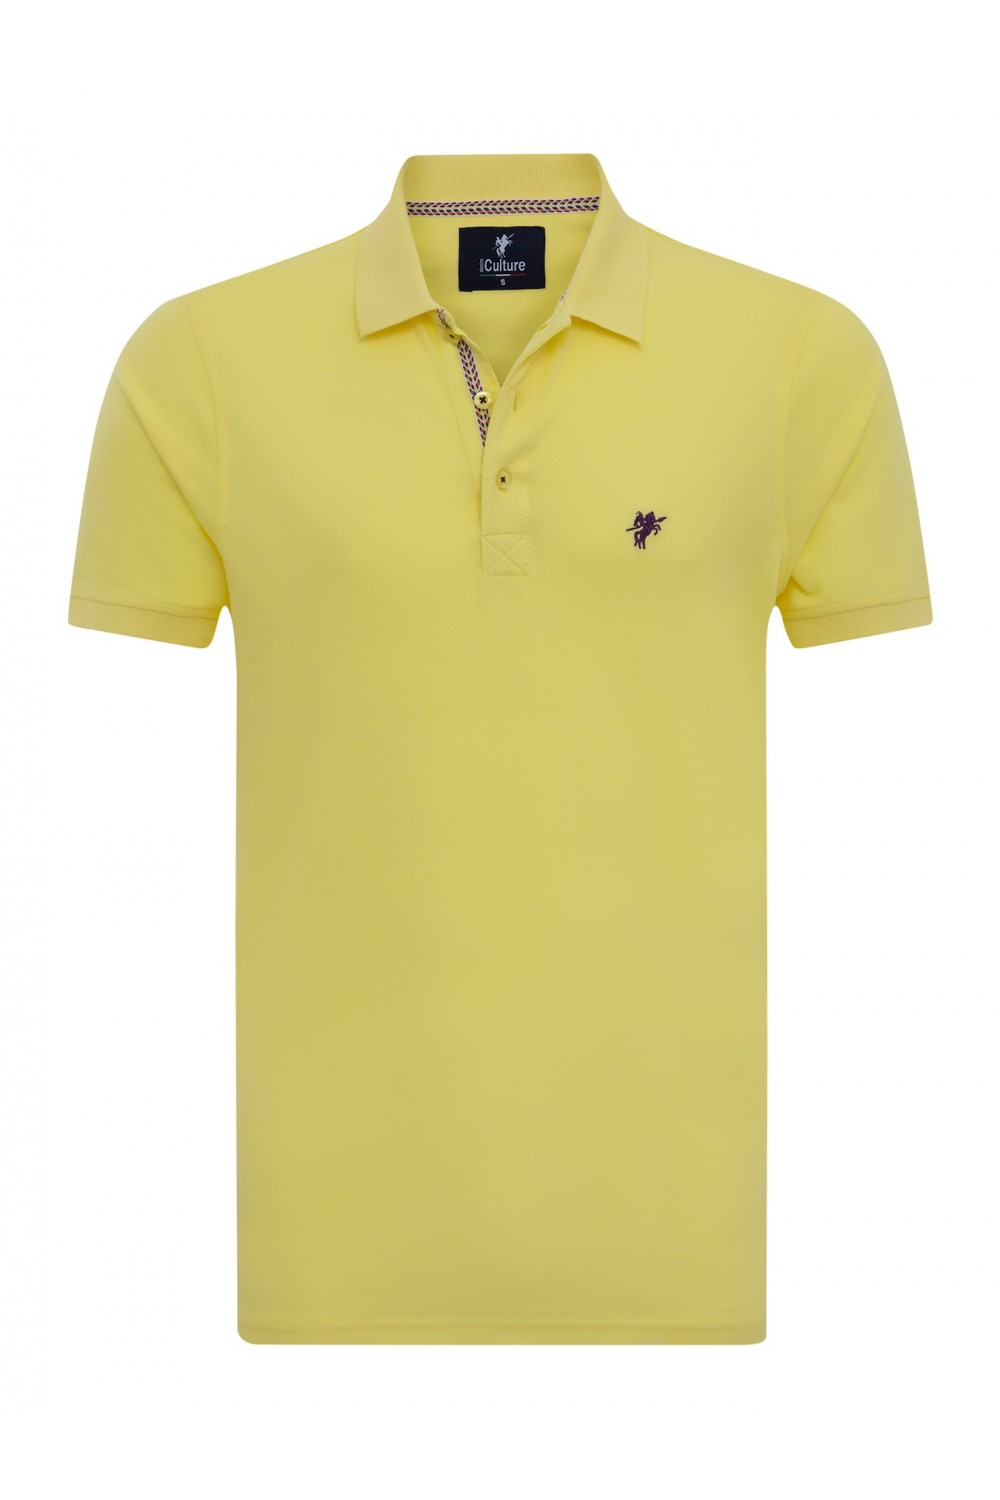 Men's Poloshirt Knitted Yellow Cotton